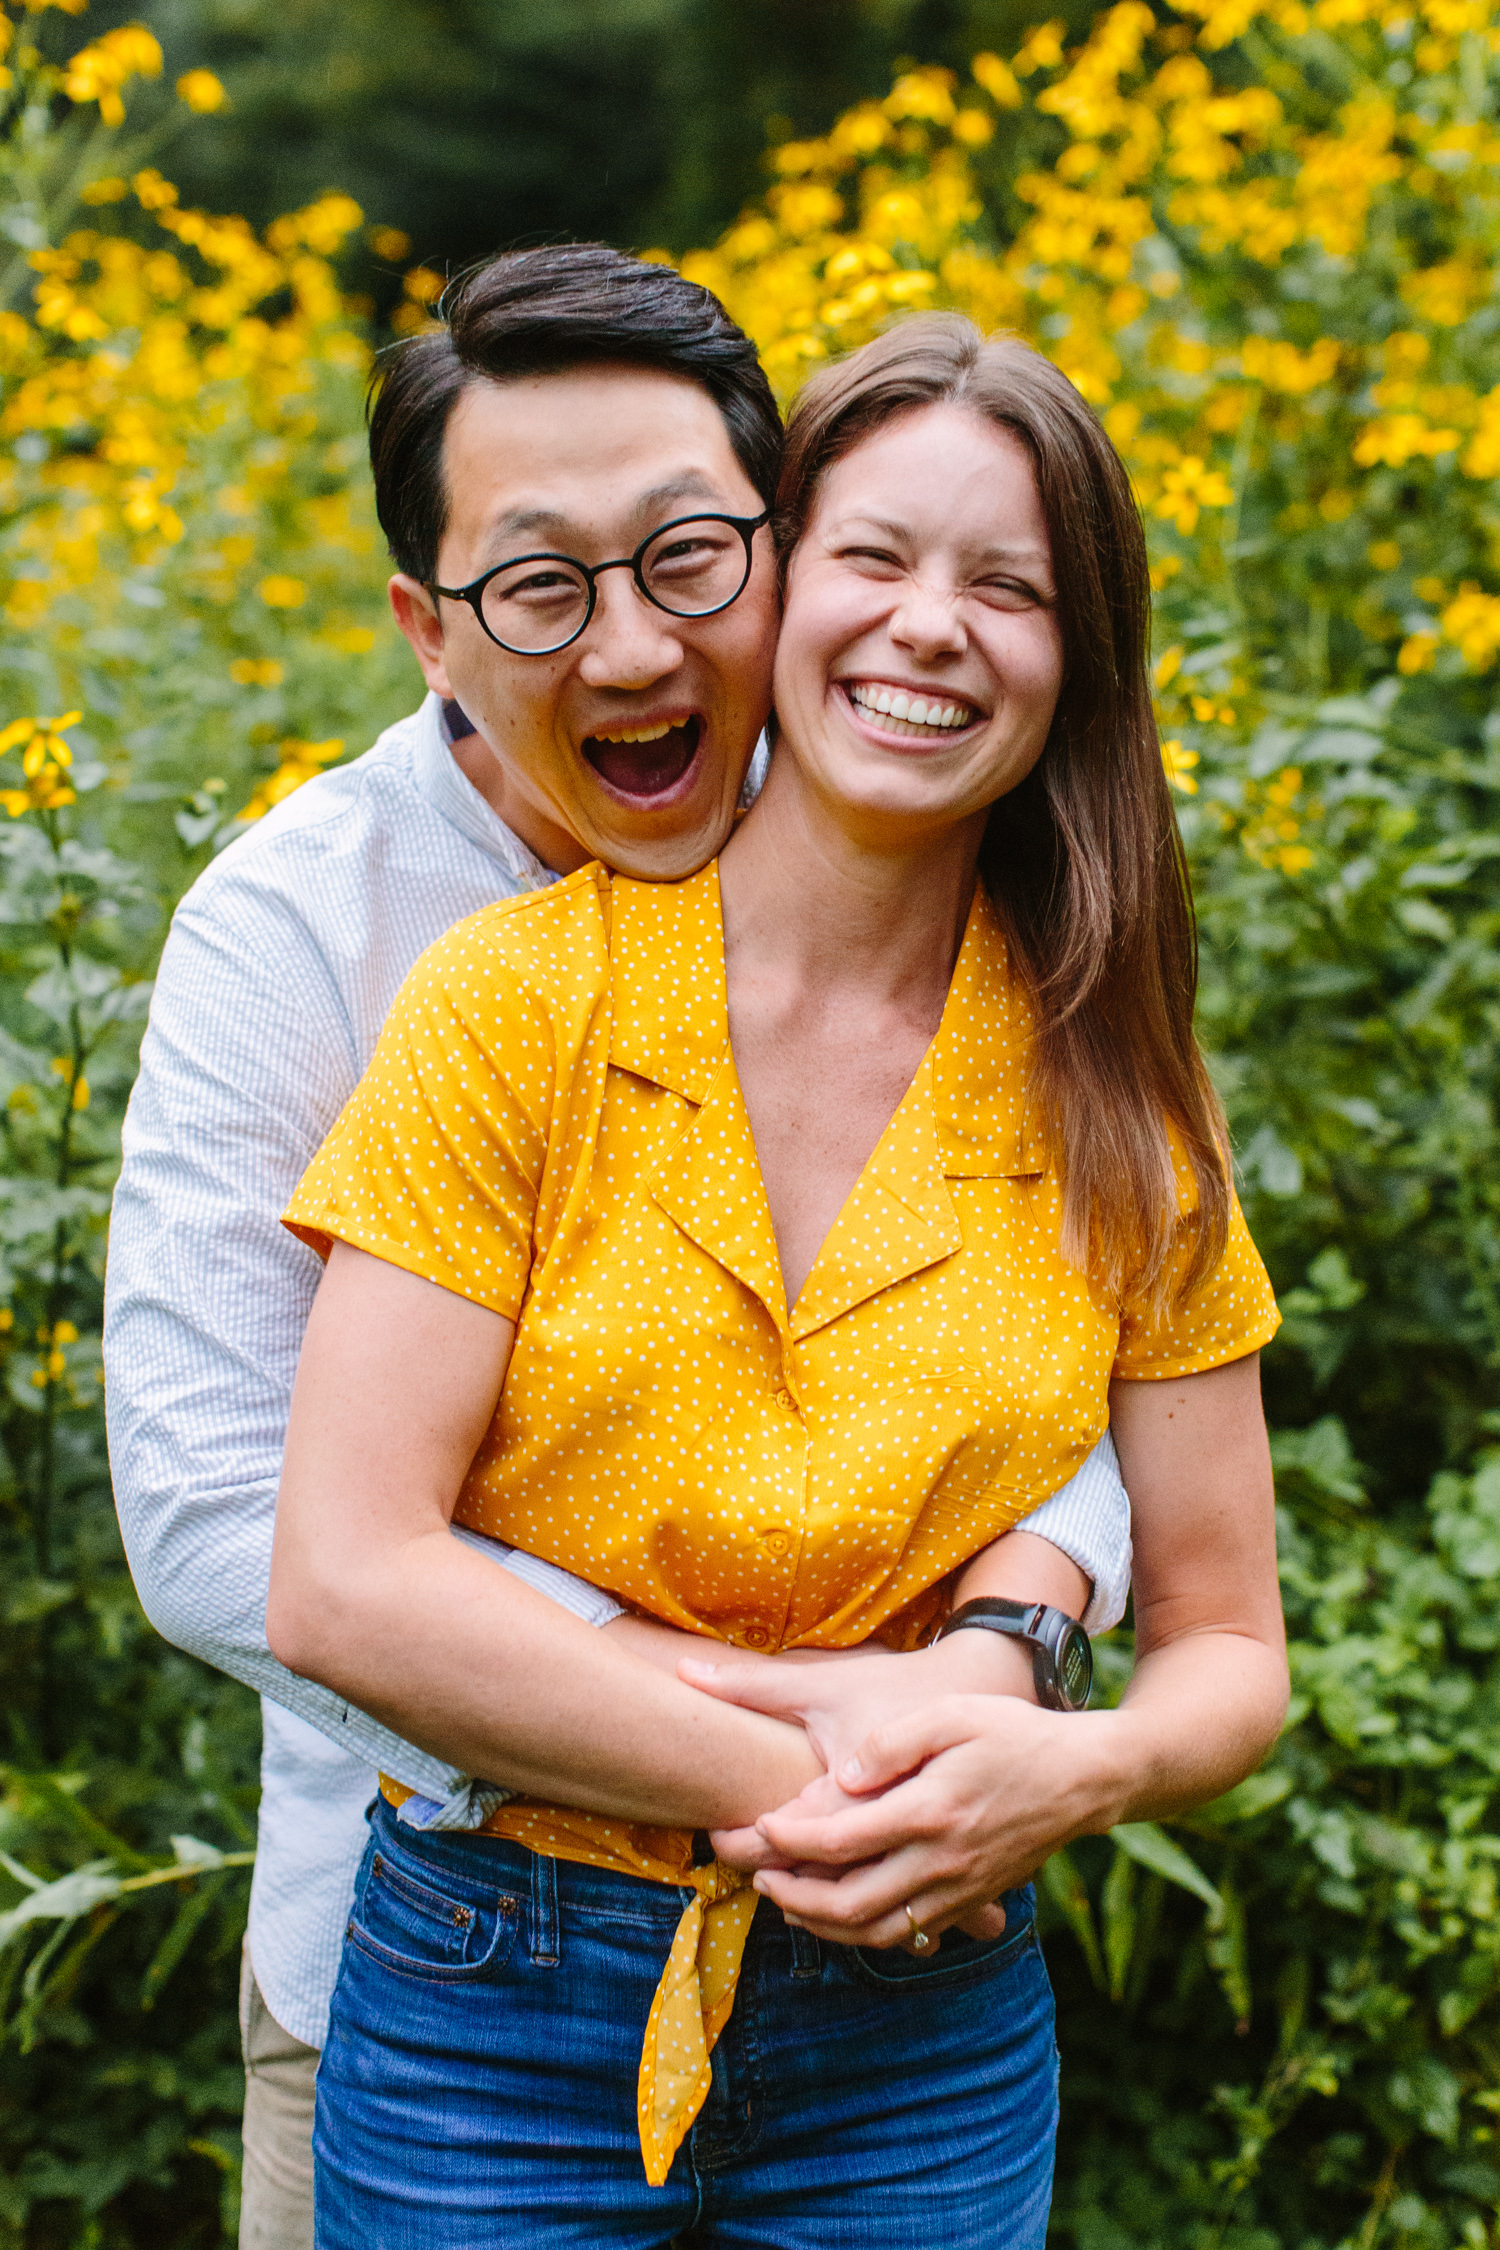 Sunflower Field Engagement Photos Max Patch // Suzy Collins Photography